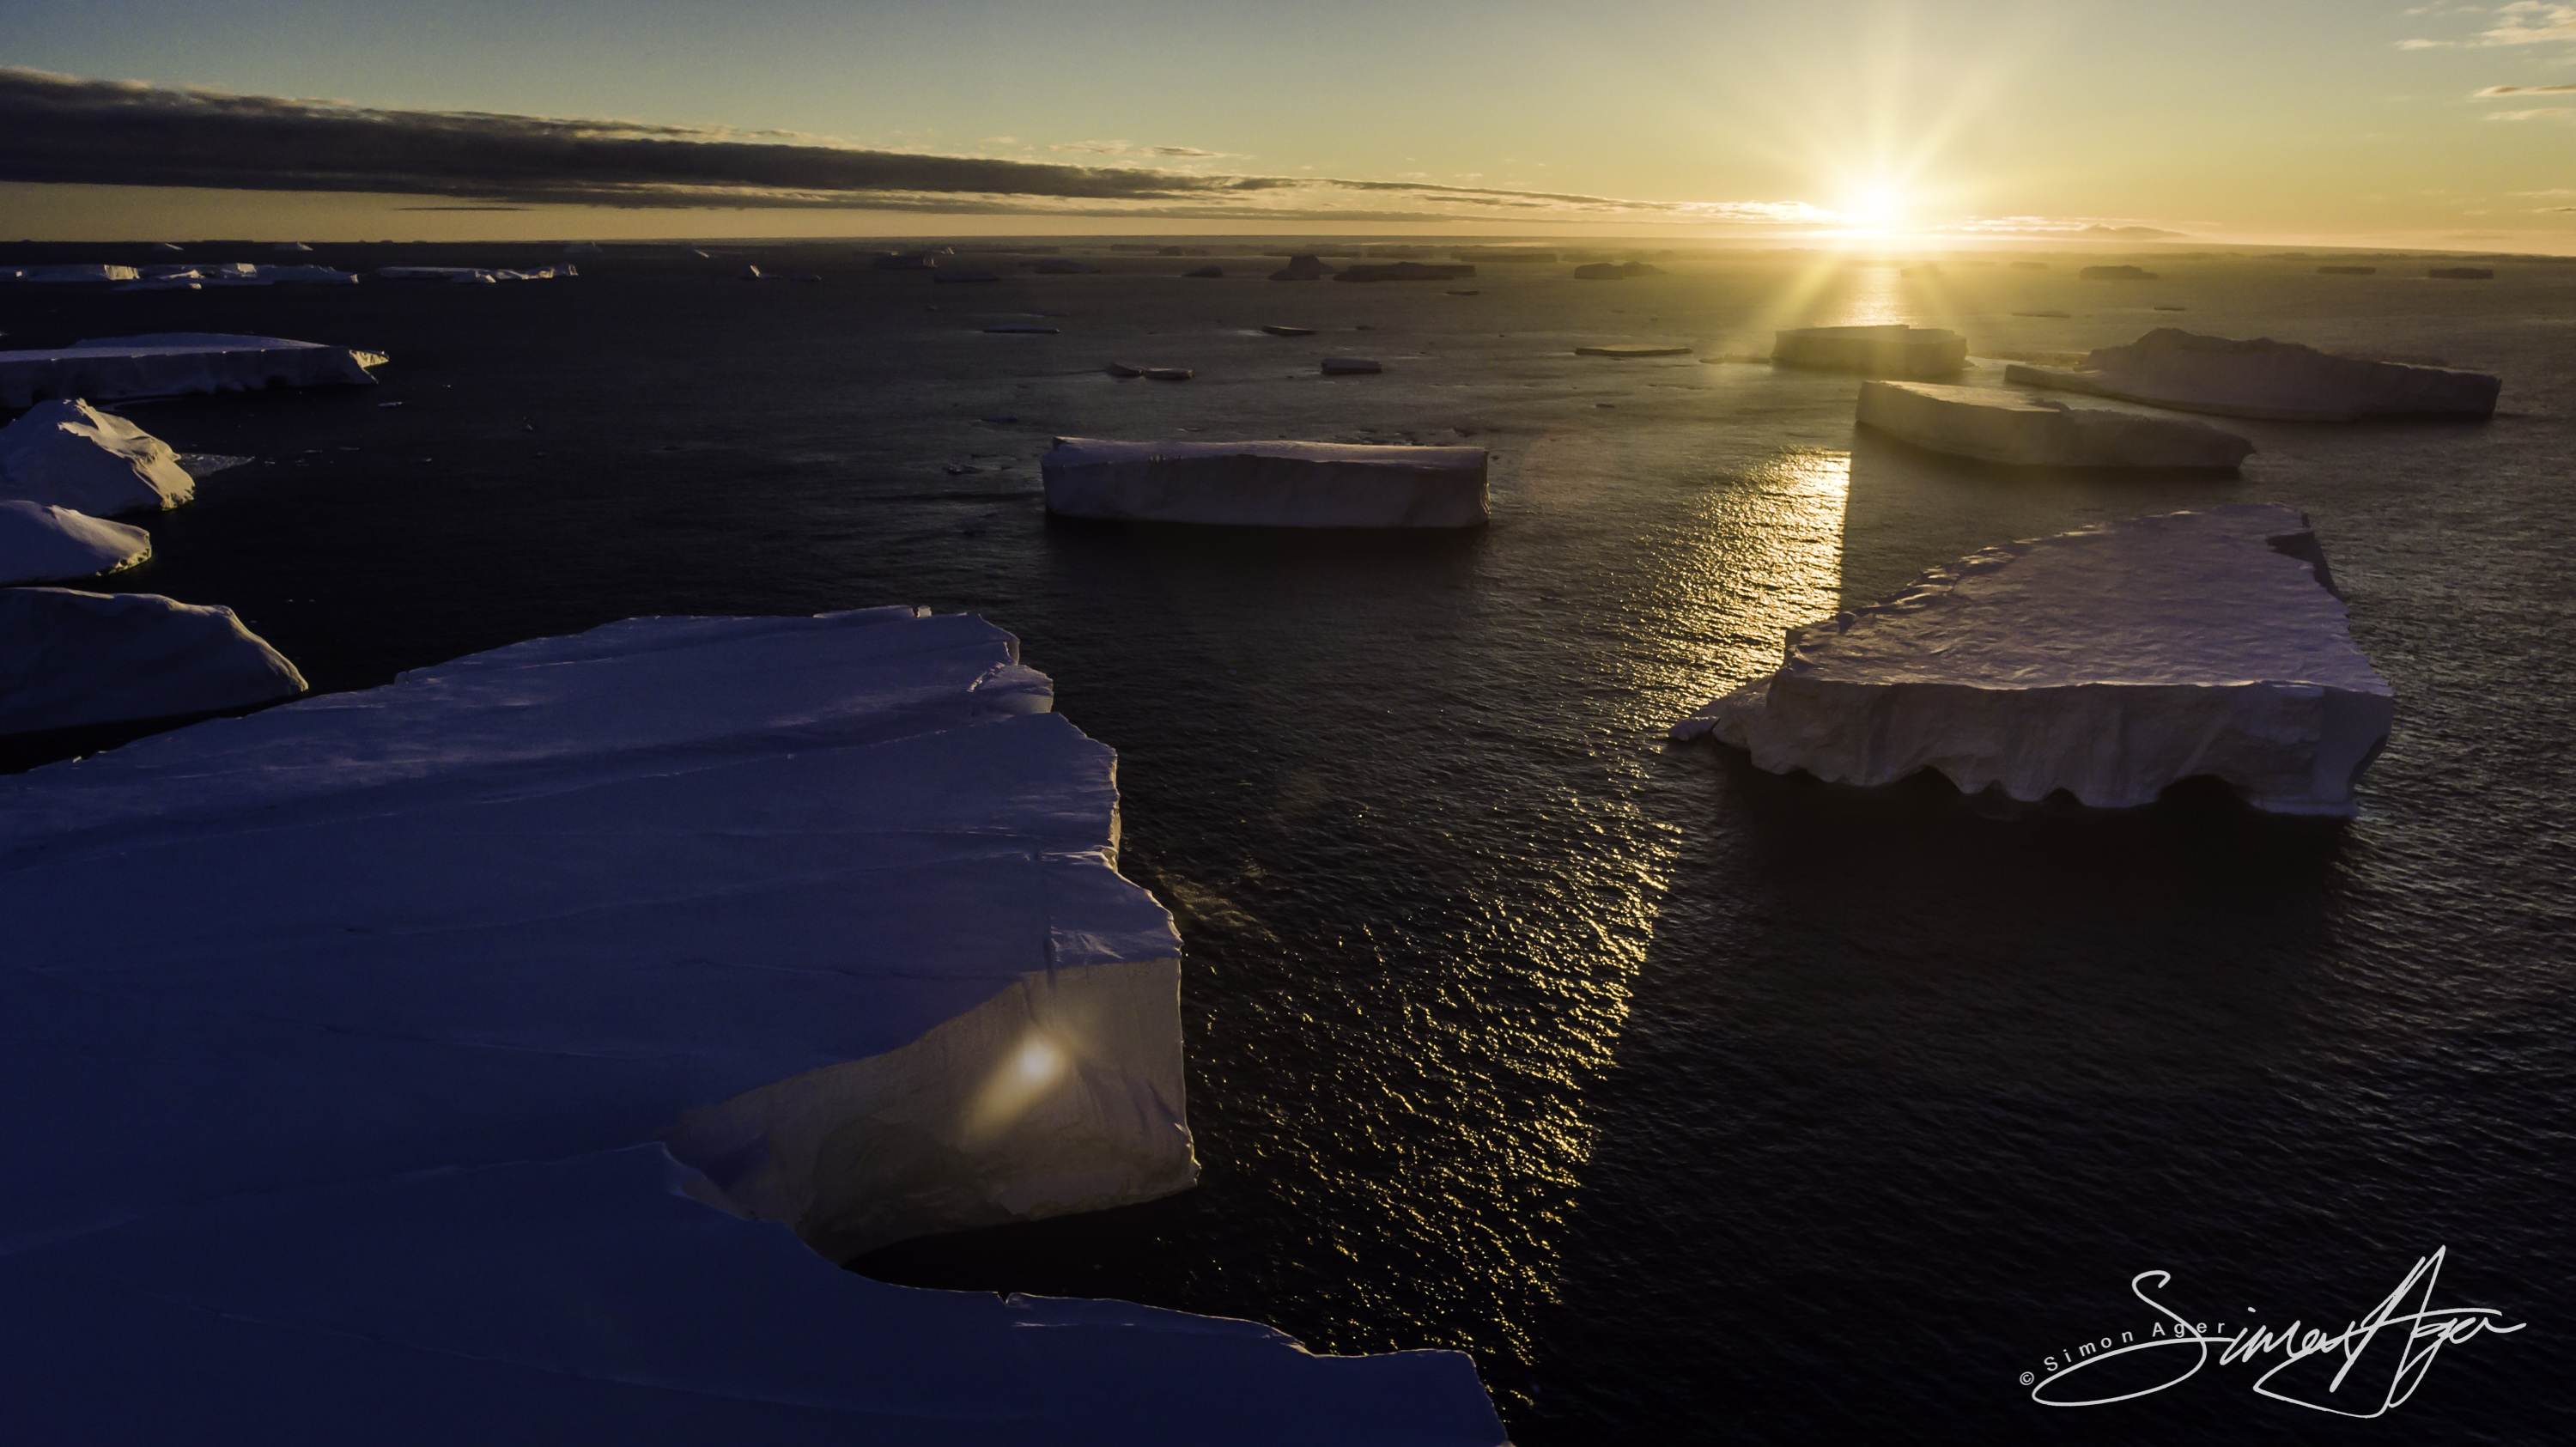 170213-SA-Antarctica-sunset-with-icebergs-boom-drop-the-mich!-001-